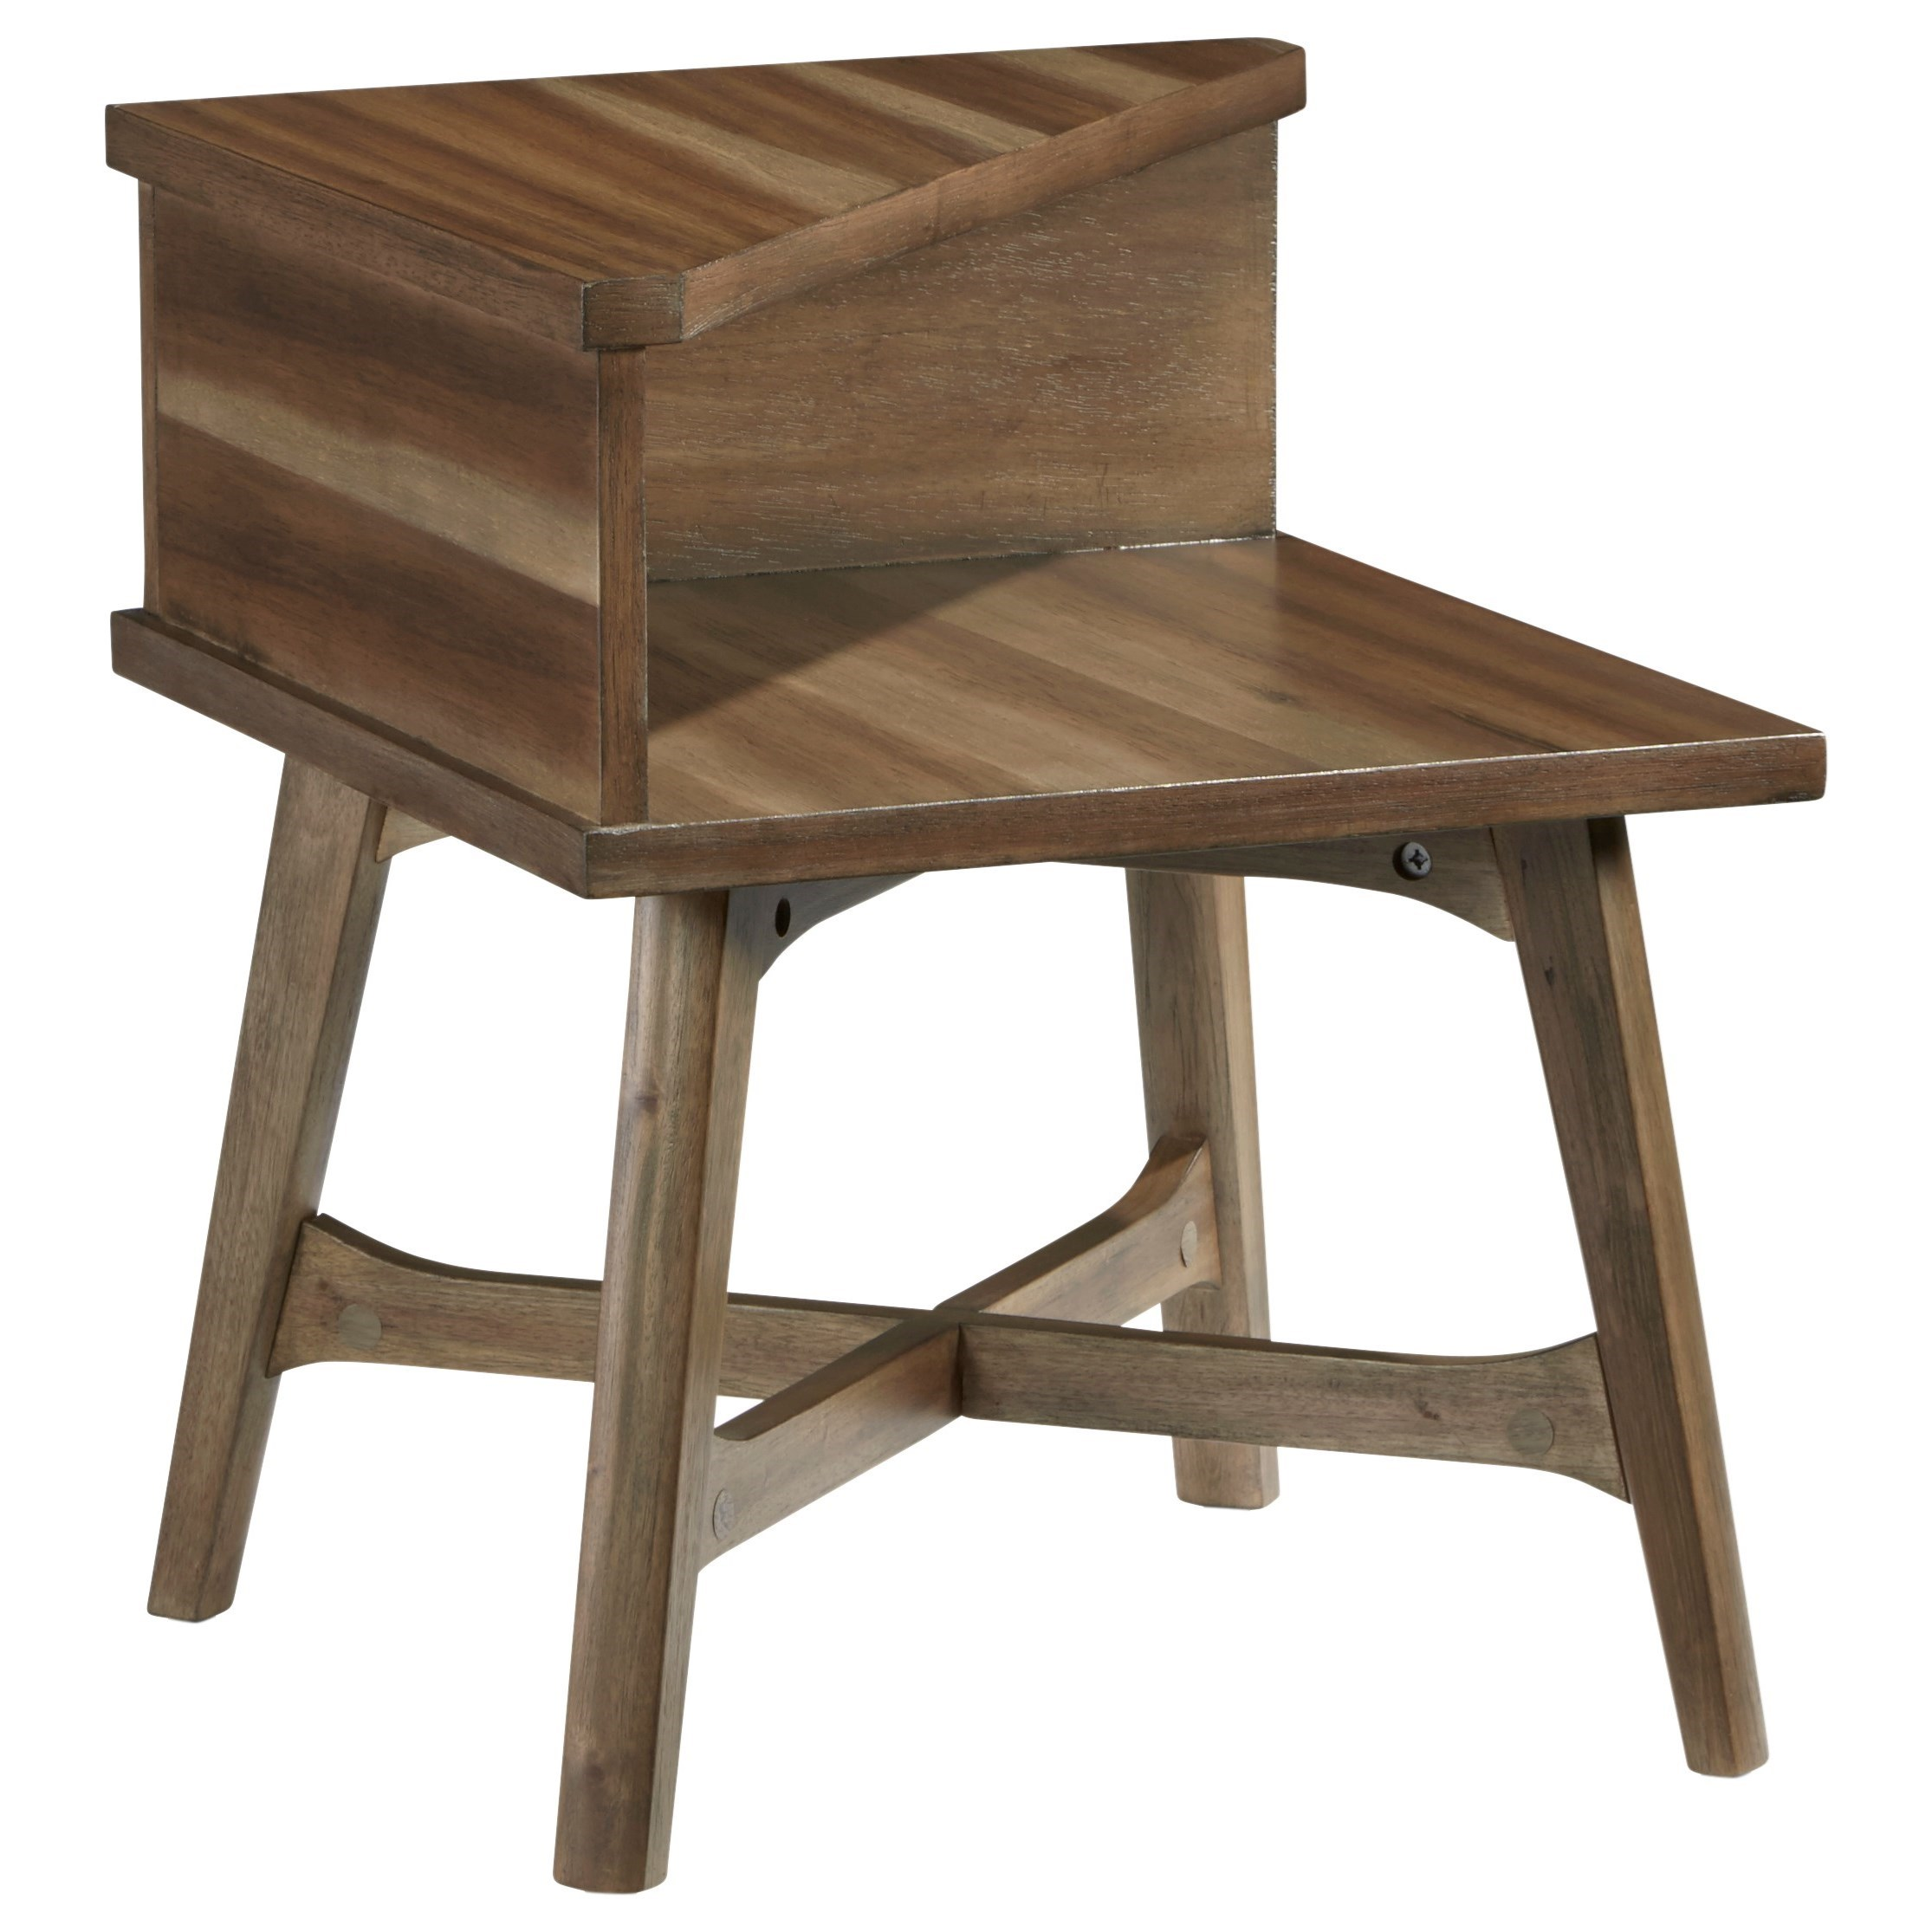 Bungalow Chairside Table by Progressive Furniture at Catalog Outlet